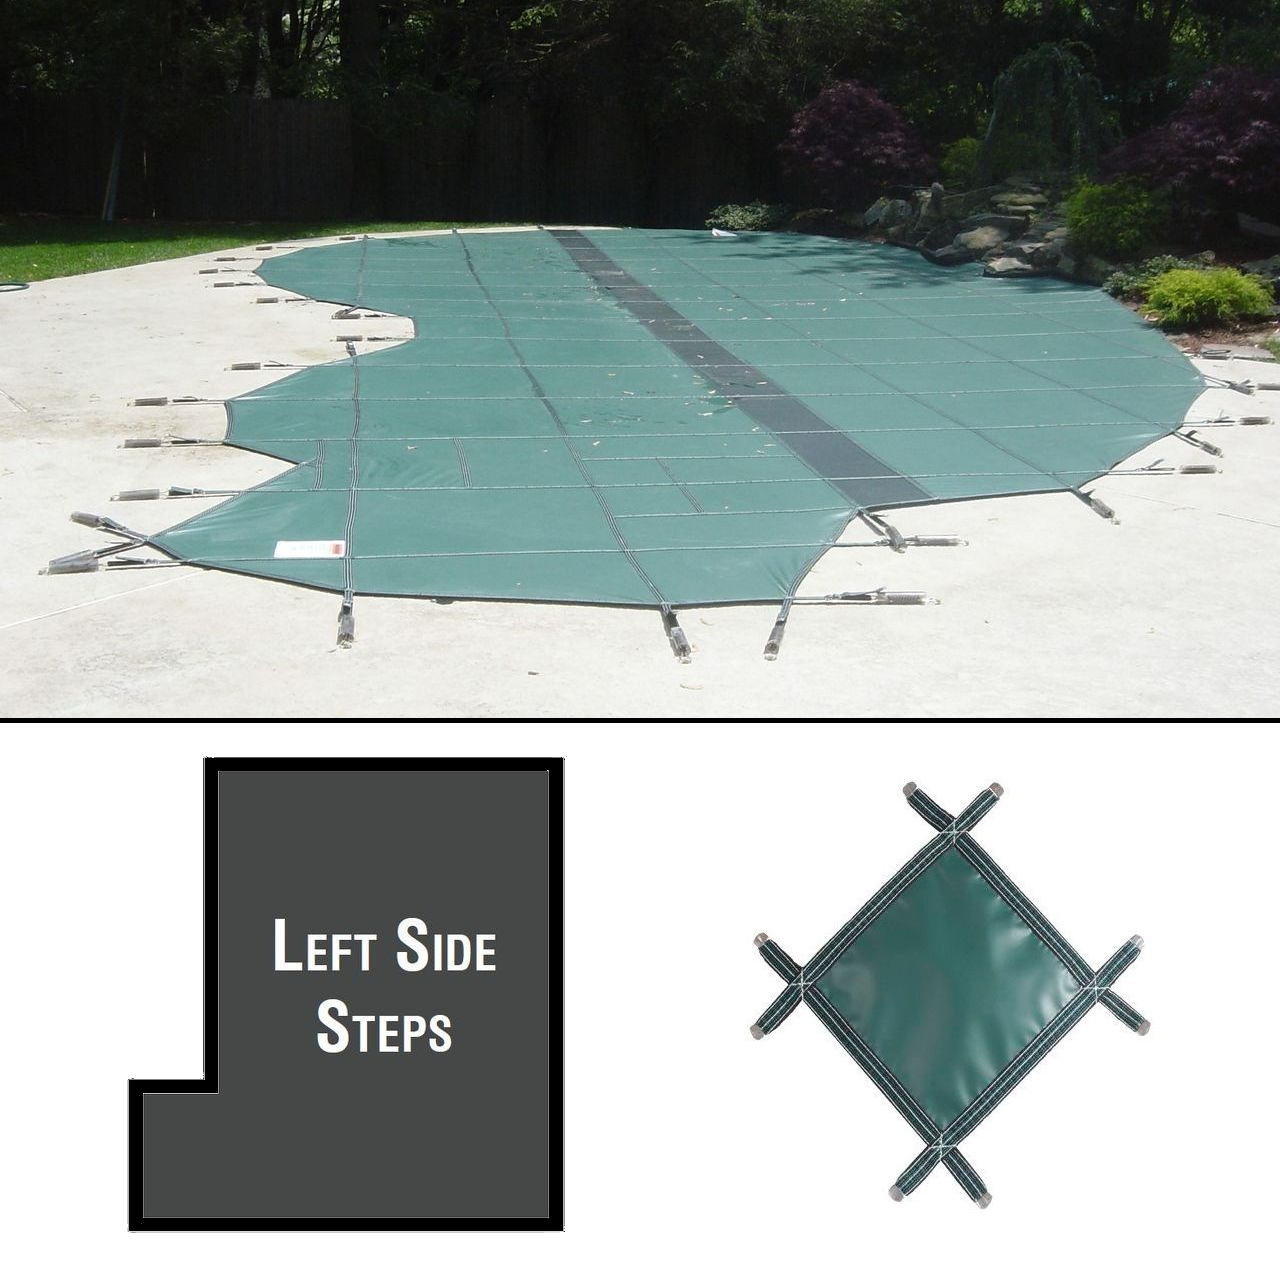 PermaGuard 22'x42' Rectangular Pool Cover With 4'x10' Left Side Steps